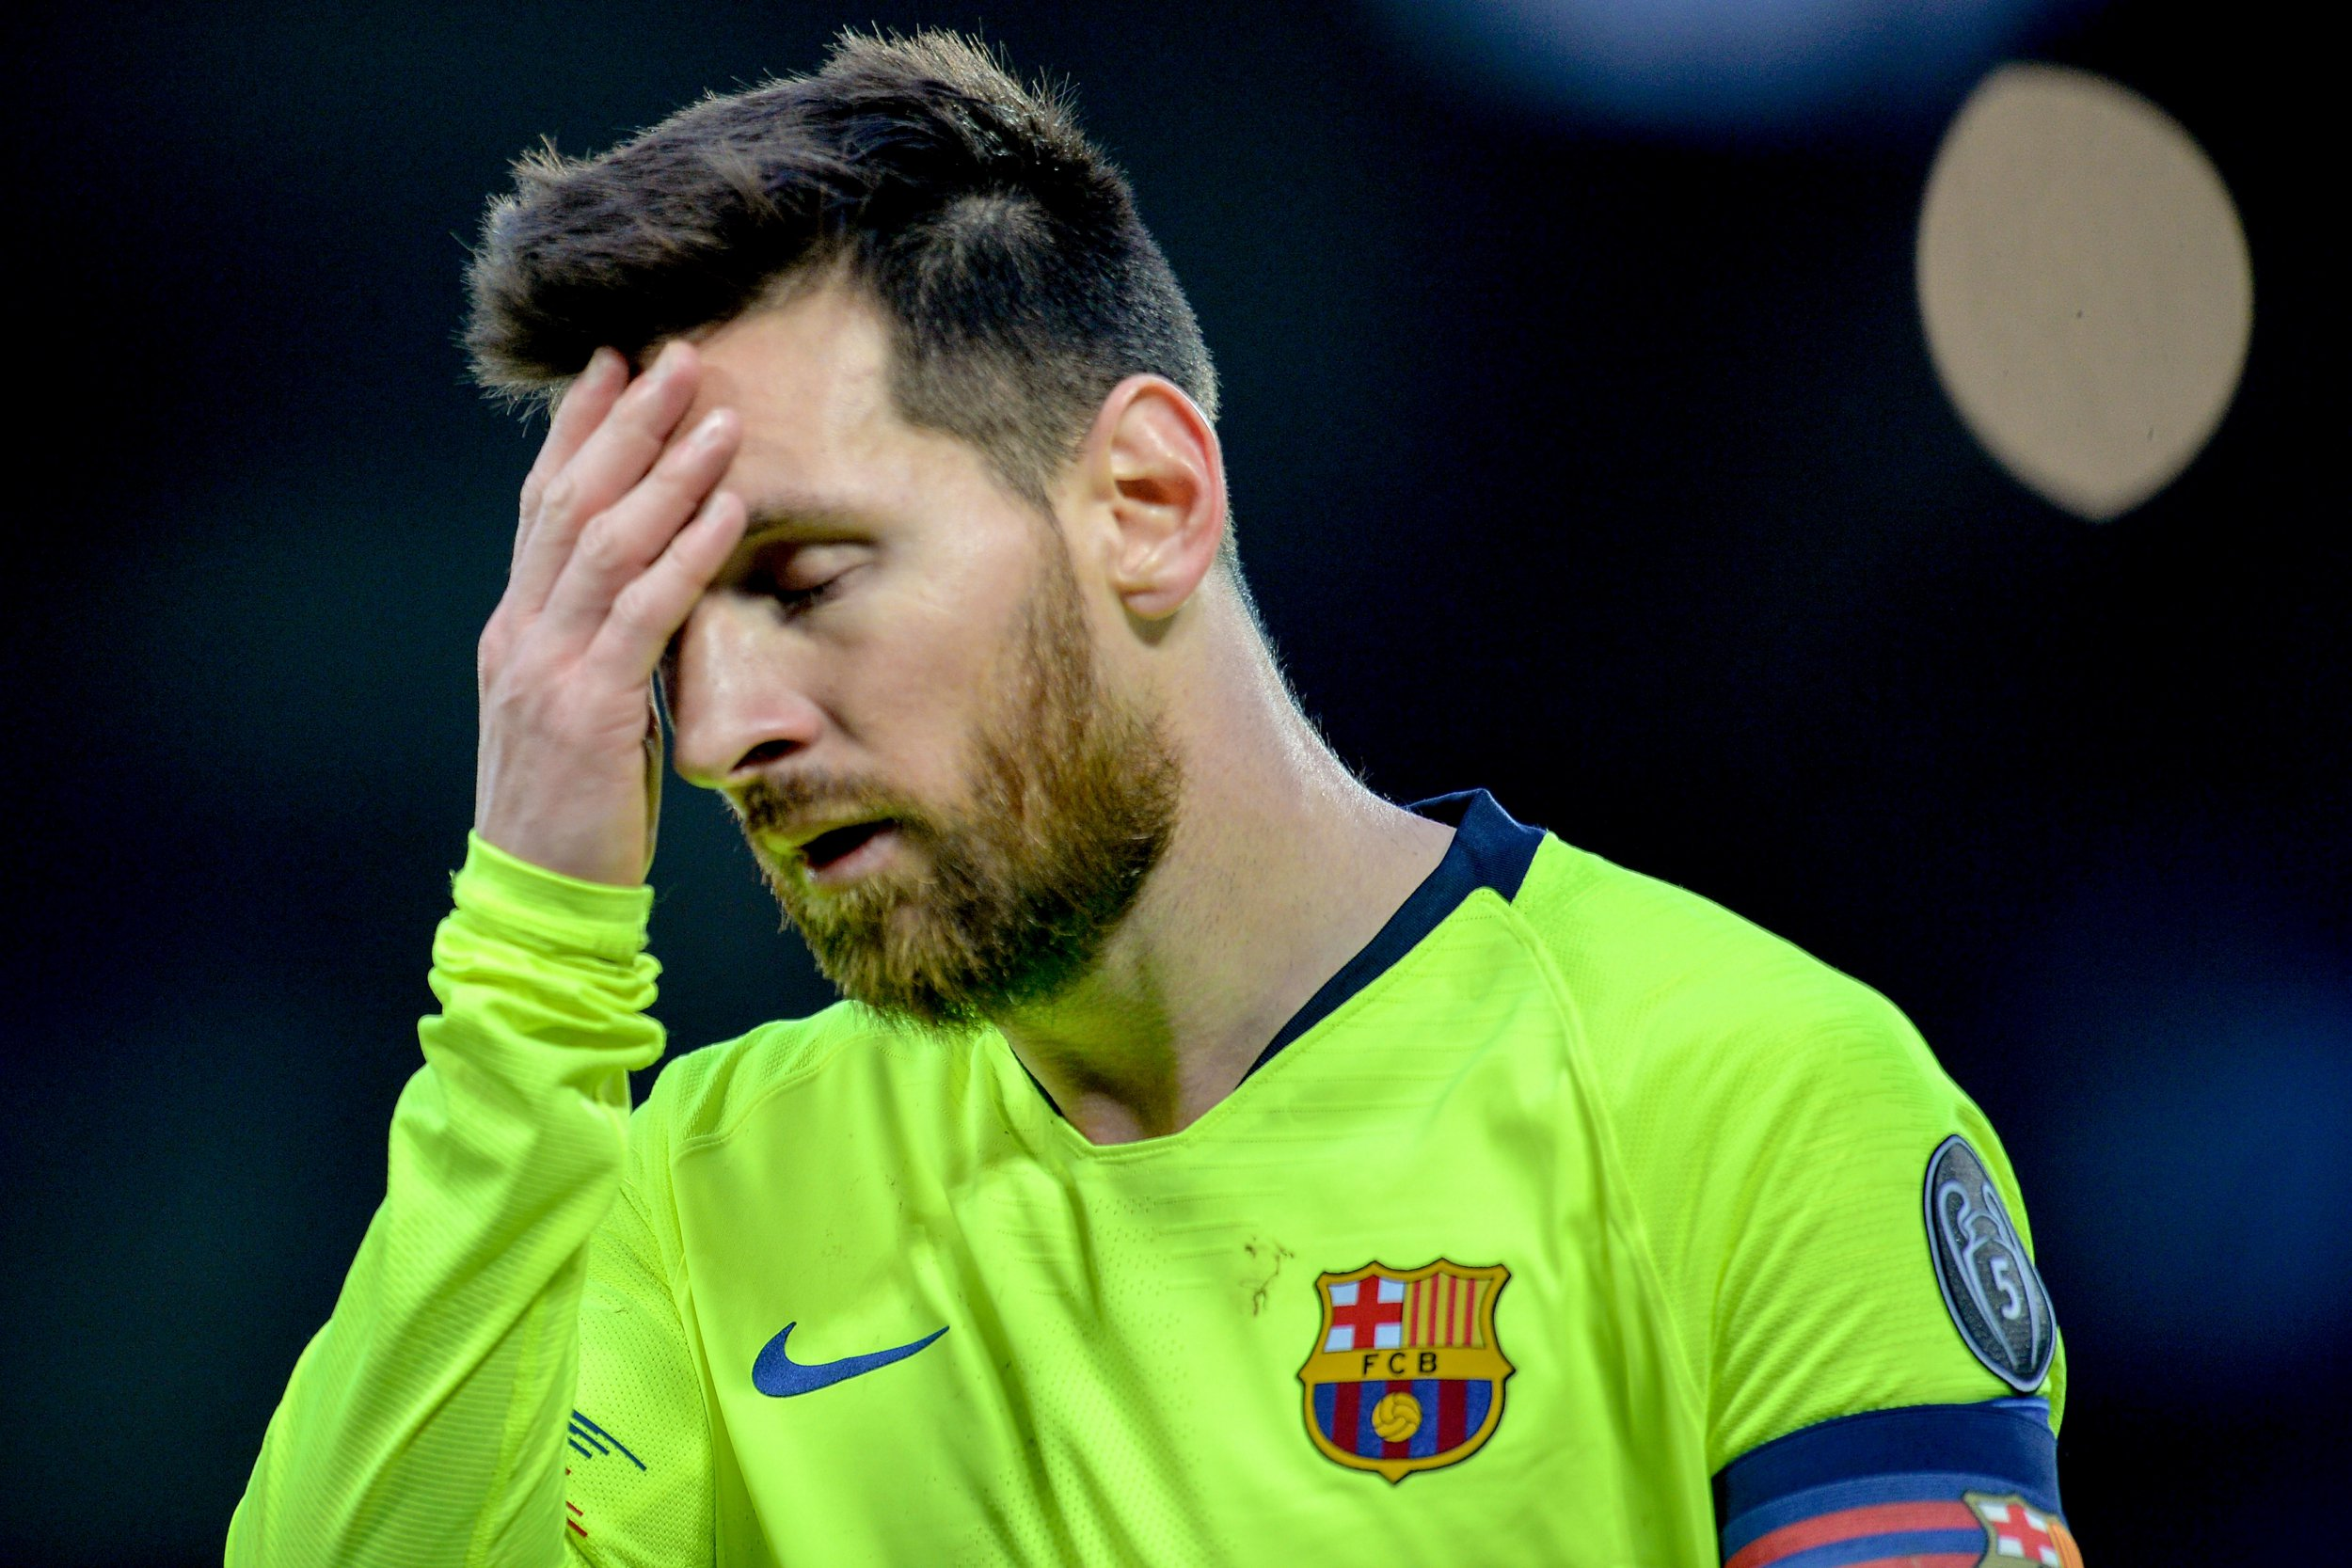 Leo Messi Barcelona Team Bus Leaves Lionel Messi At Anfield After Liverpool